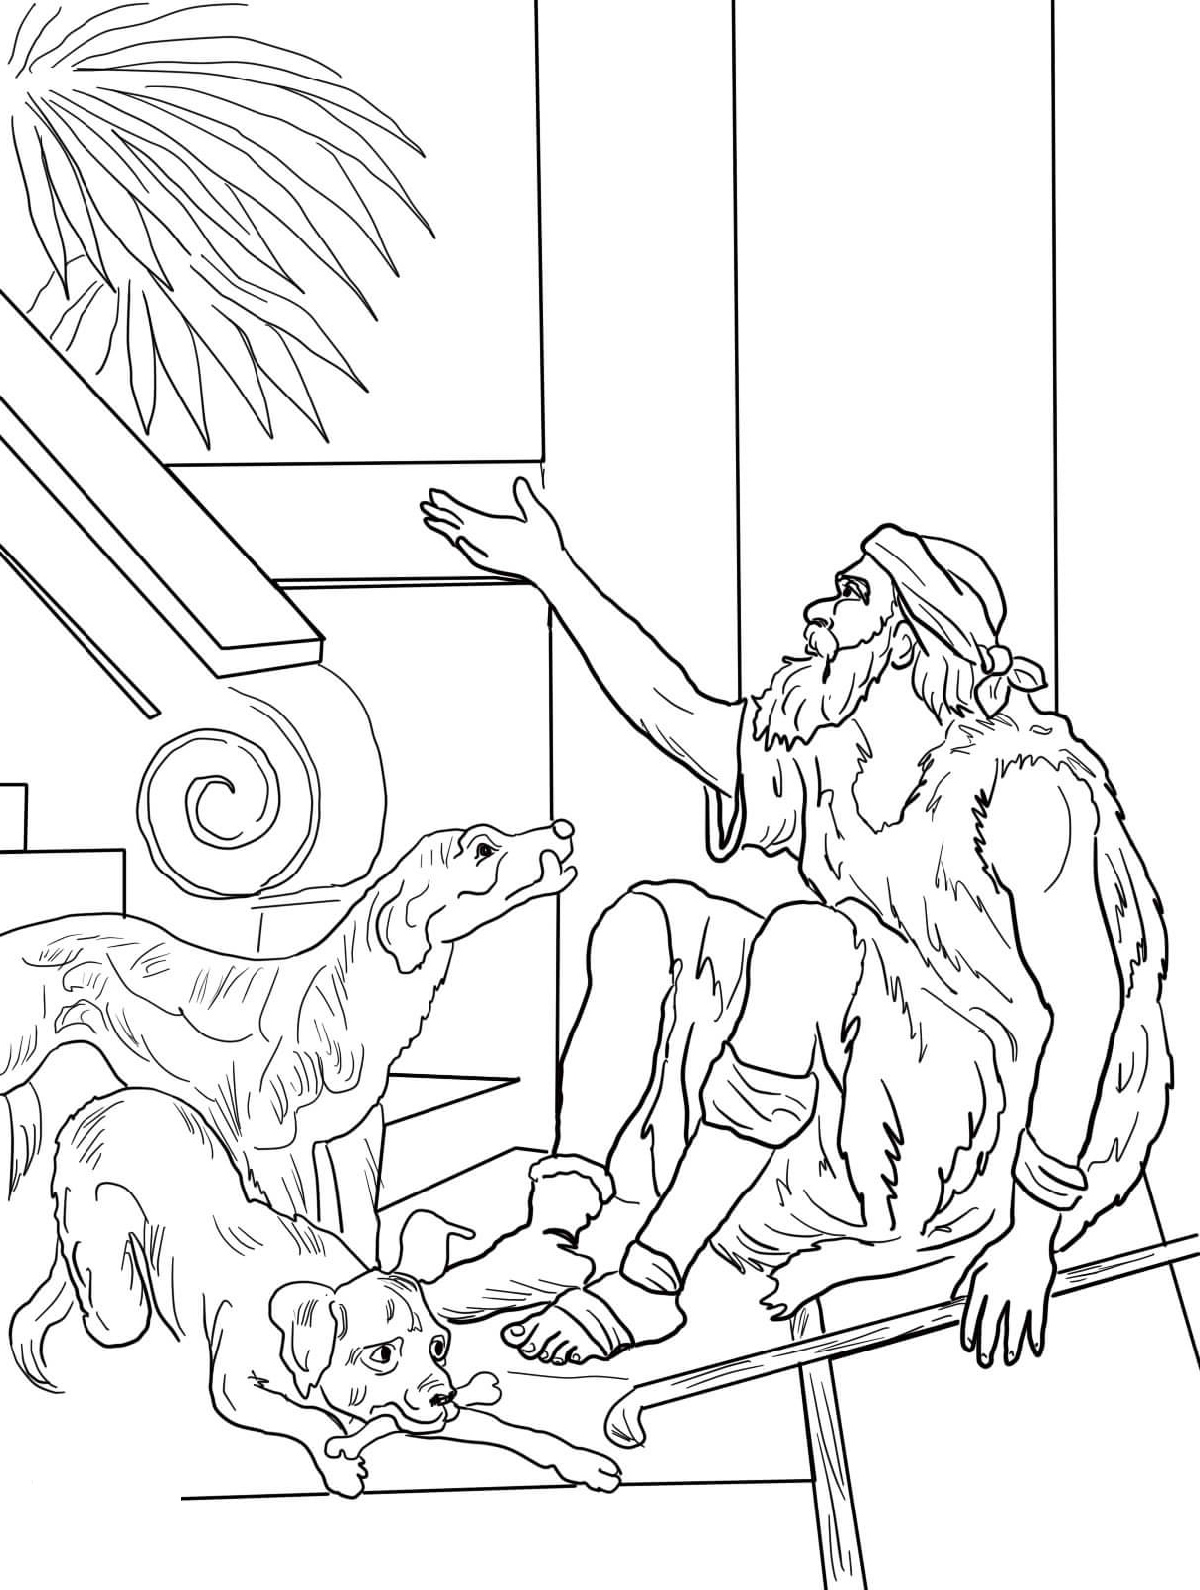 Lazarus Coloring Page And The Rich Man